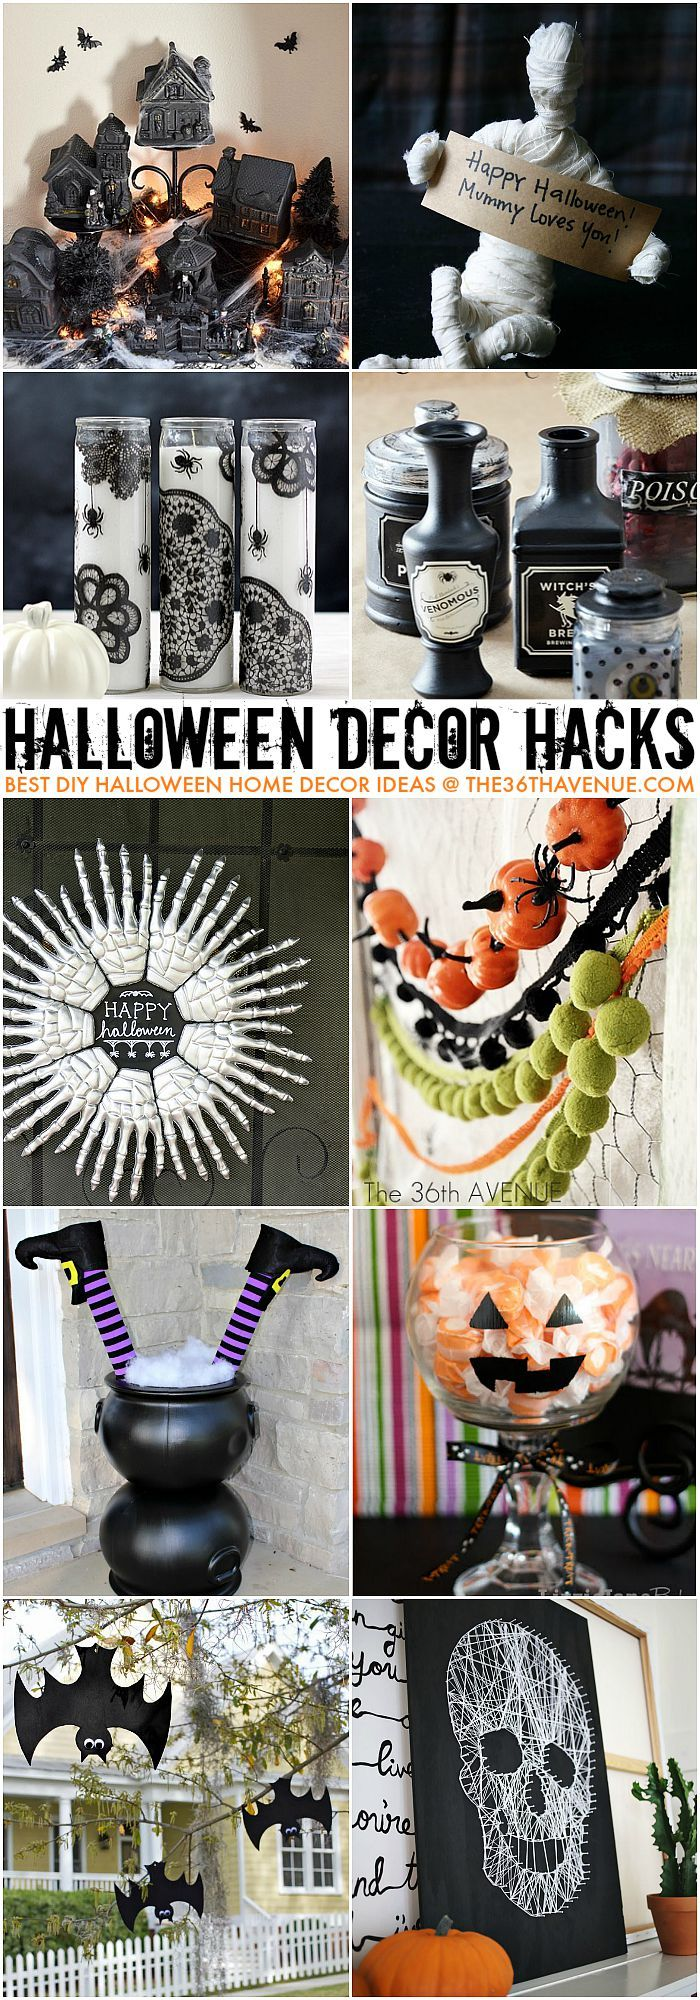 Halloween Decor Ideas and Hacks at the36thavenue.com: